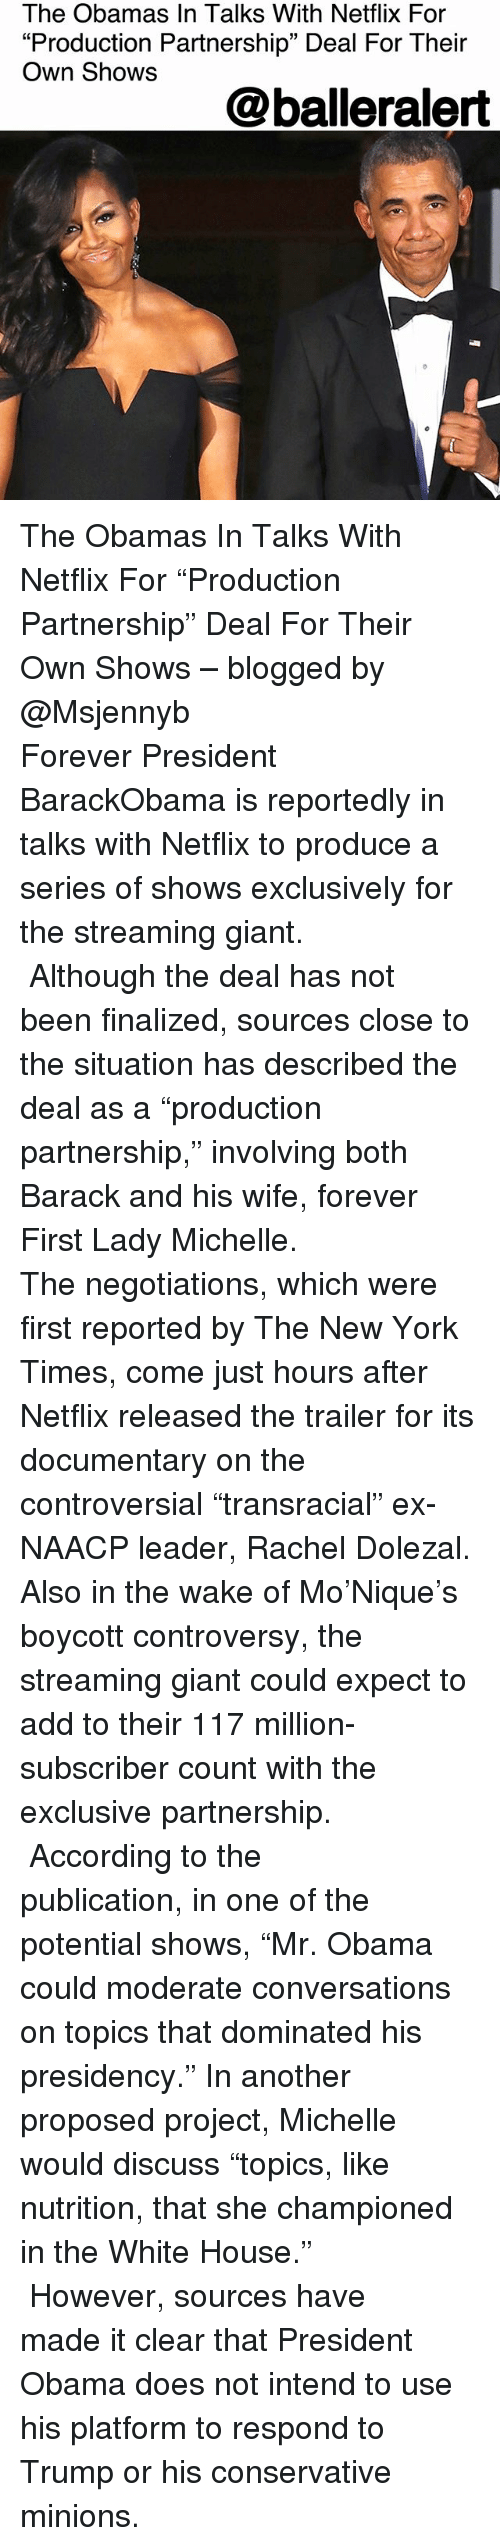 "The Obamas: The Obamas In Talks With Netflix For  ""Production Partnership"" Deal For Their  Own Shows  @balleralert The Obamas In Talks With Netflix For ""Production Partnership"" Deal For Their Own Shows – blogged by @Msjennyb ⠀⠀⠀⠀⠀⠀⠀⠀⠀ ⠀⠀⠀⠀⠀⠀⠀⠀⠀ Forever President BarackObama is reportedly in talks with Netflix to produce a series of shows exclusively for the streaming giant. ⠀⠀⠀⠀⠀⠀⠀⠀⠀ ⠀⠀⠀⠀⠀⠀⠀⠀⠀ Although the deal has not been finalized, sources close to the situation has described the deal as a ""production partnership,"" involving both Barack and his wife, forever First Lady Michelle. ⠀⠀⠀⠀⠀⠀⠀⠀⠀ ⠀⠀⠀⠀⠀⠀⠀⠀⠀ The negotiations, which were first reported by The New York Times, come just hours after Netflix released the trailer for its documentary on the controversial ""transracial"" ex-NAACP leader, Rachel Dolezal. Also in the wake of Mo'Nique's boycott controversy, the streaming giant could expect to add to their 117 million-subscriber count with the exclusive partnership. ⠀⠀⠀⠀⠀⠀⠀⠀⠀ ⠀⠀⠀⠀⠀⠀⠀⠀⠀ According to the publication, in one of the potential shows, ""Mr. Obama could moderate conversations on topics that dominated his presidency."" In another proposed project, Michelle would discuss ""topics, like nutrition, that she championed in the White House."" ⠀⠀⠀⠀⠀⠀⠀⠀⠀ ⠀⠀⠀⠀⠀⠀⠀⠀⠀ However, sources have made it clear that President Obama does not intend to use his platform to respond to Trump or his conservative minions."